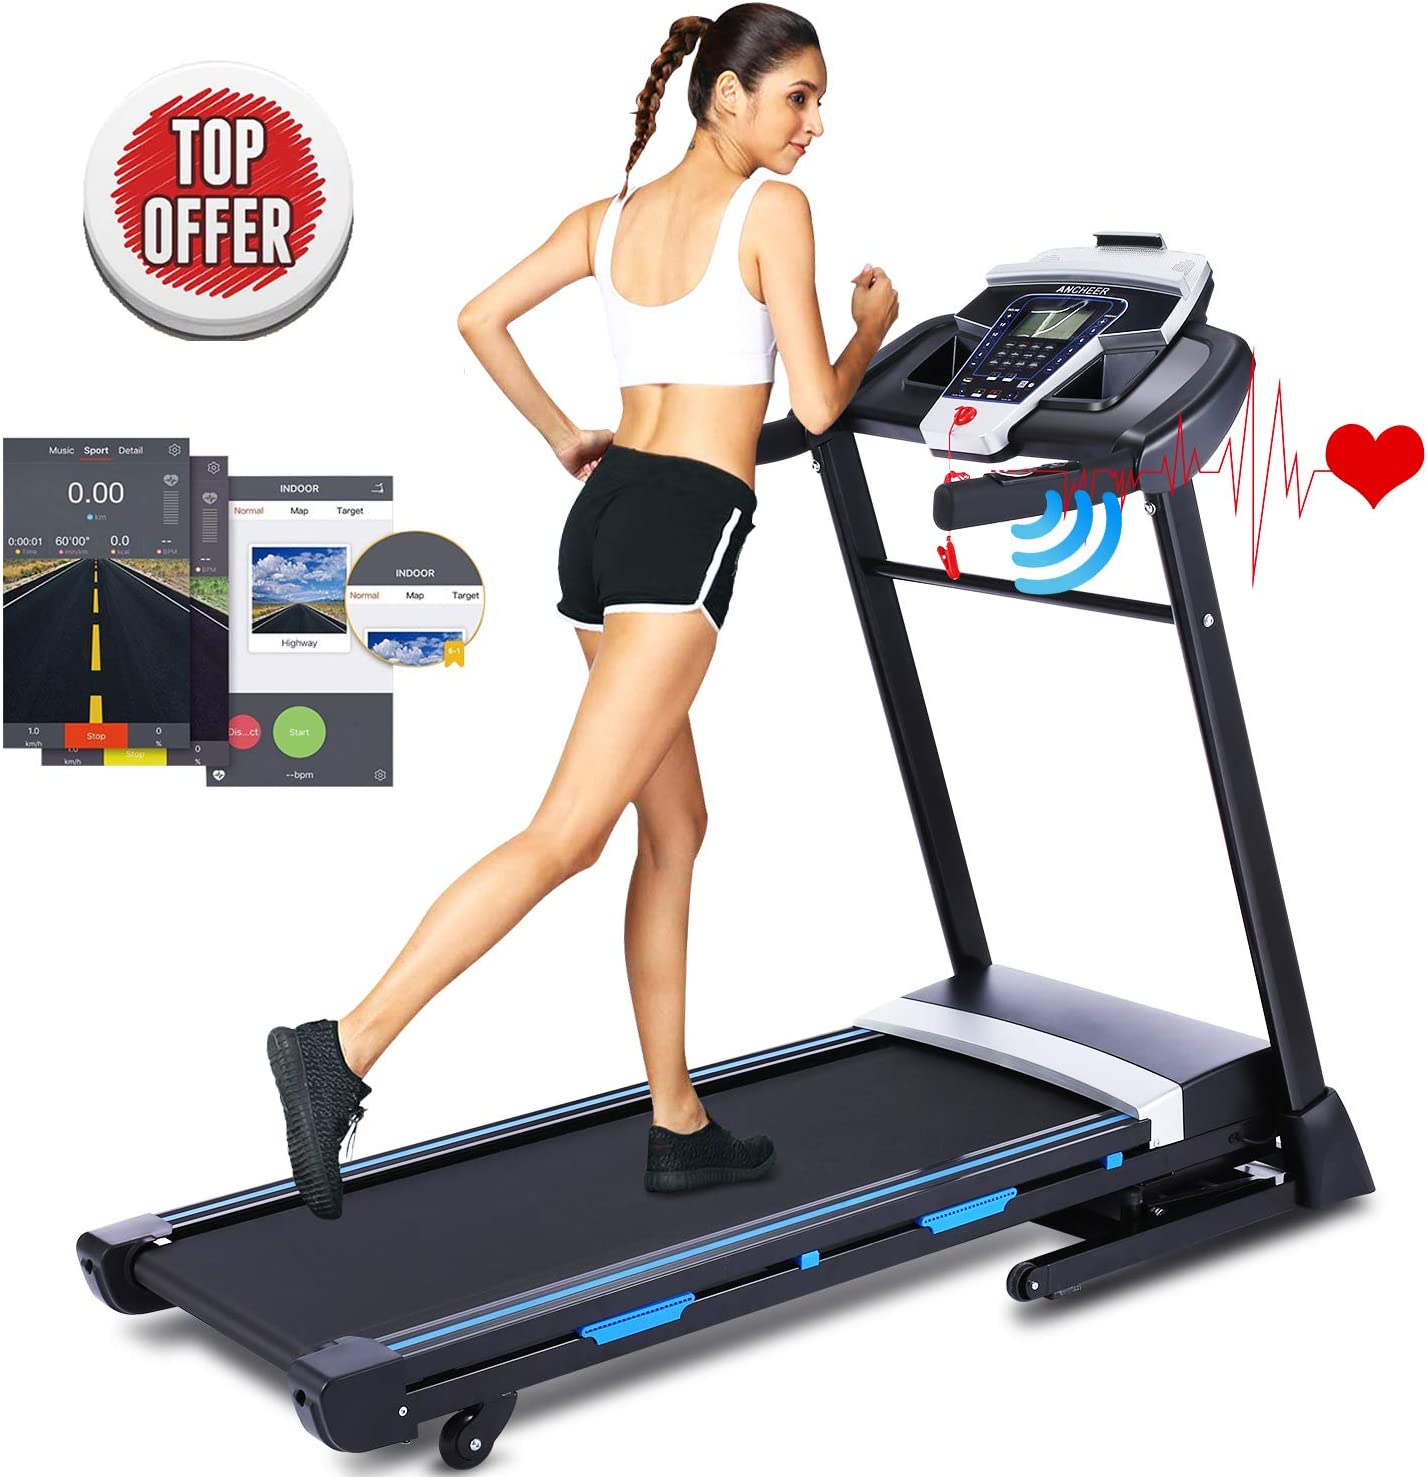 ANCHEER 3.25HP Folding Treadmill, Electric Automatic Incline Treadmill, Motorized Running Jogging Machine for Gym Home & Office Workout